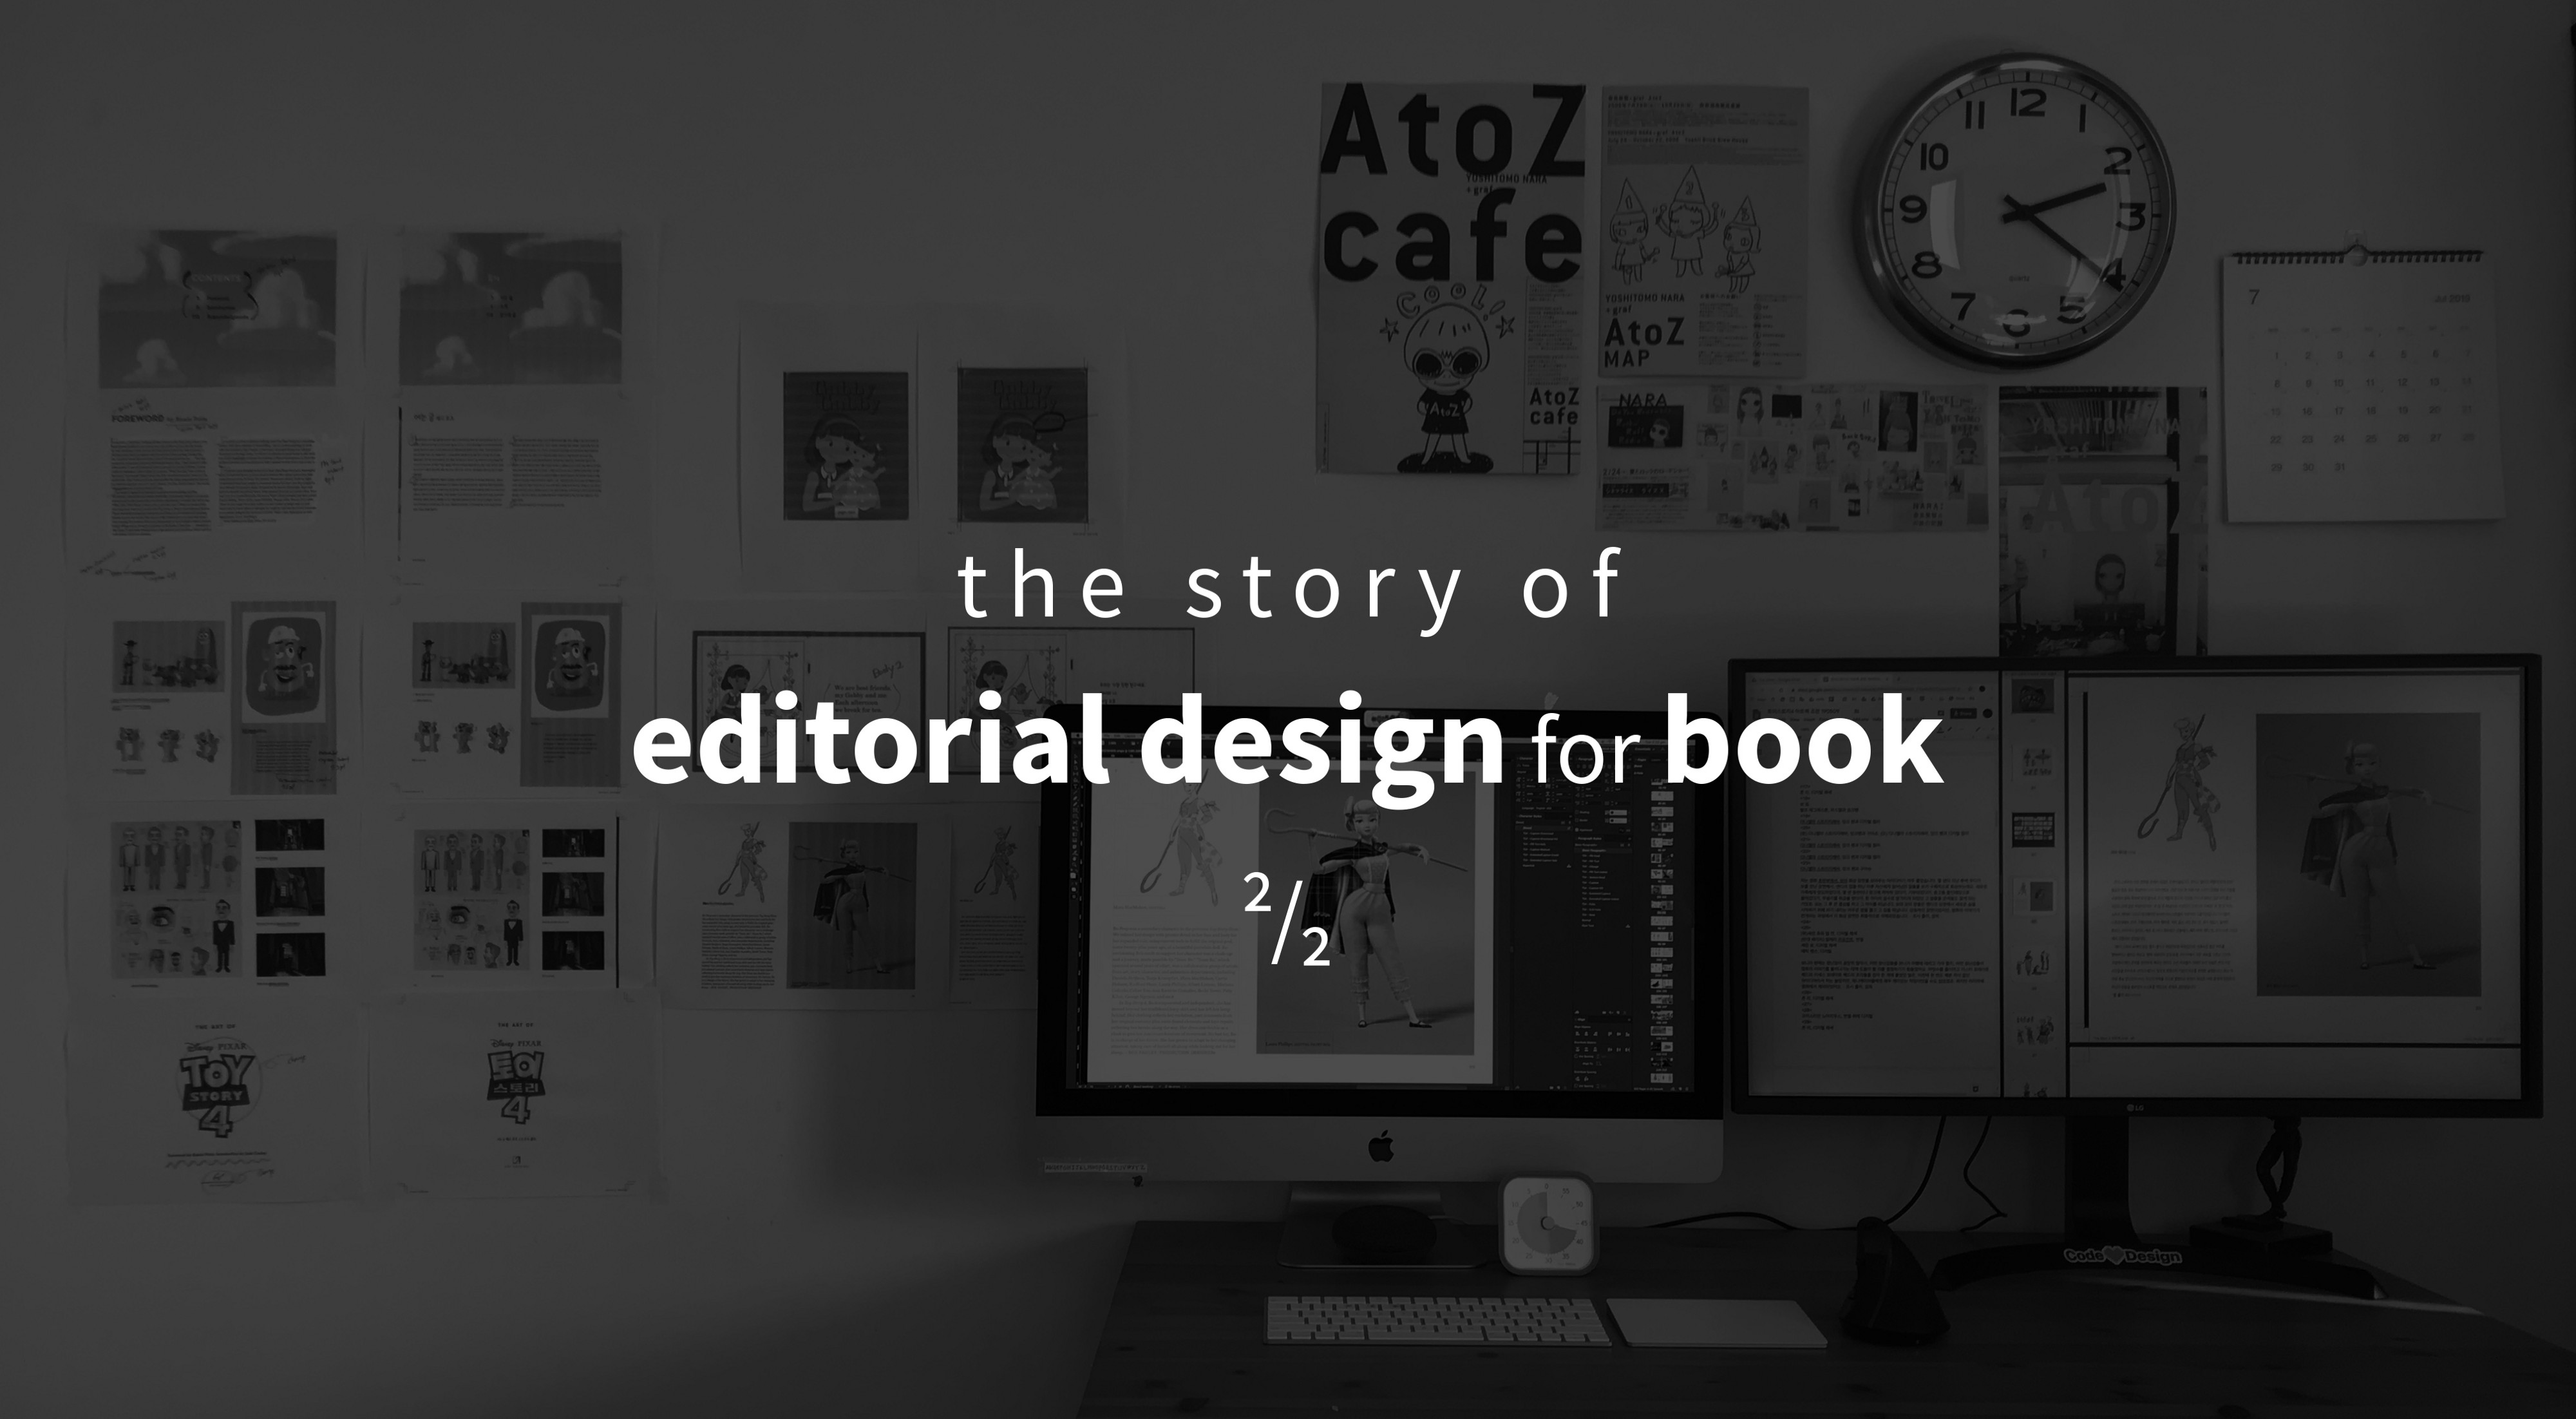 The story of editorial design for book ²/₂: The Art of Toy Story 4